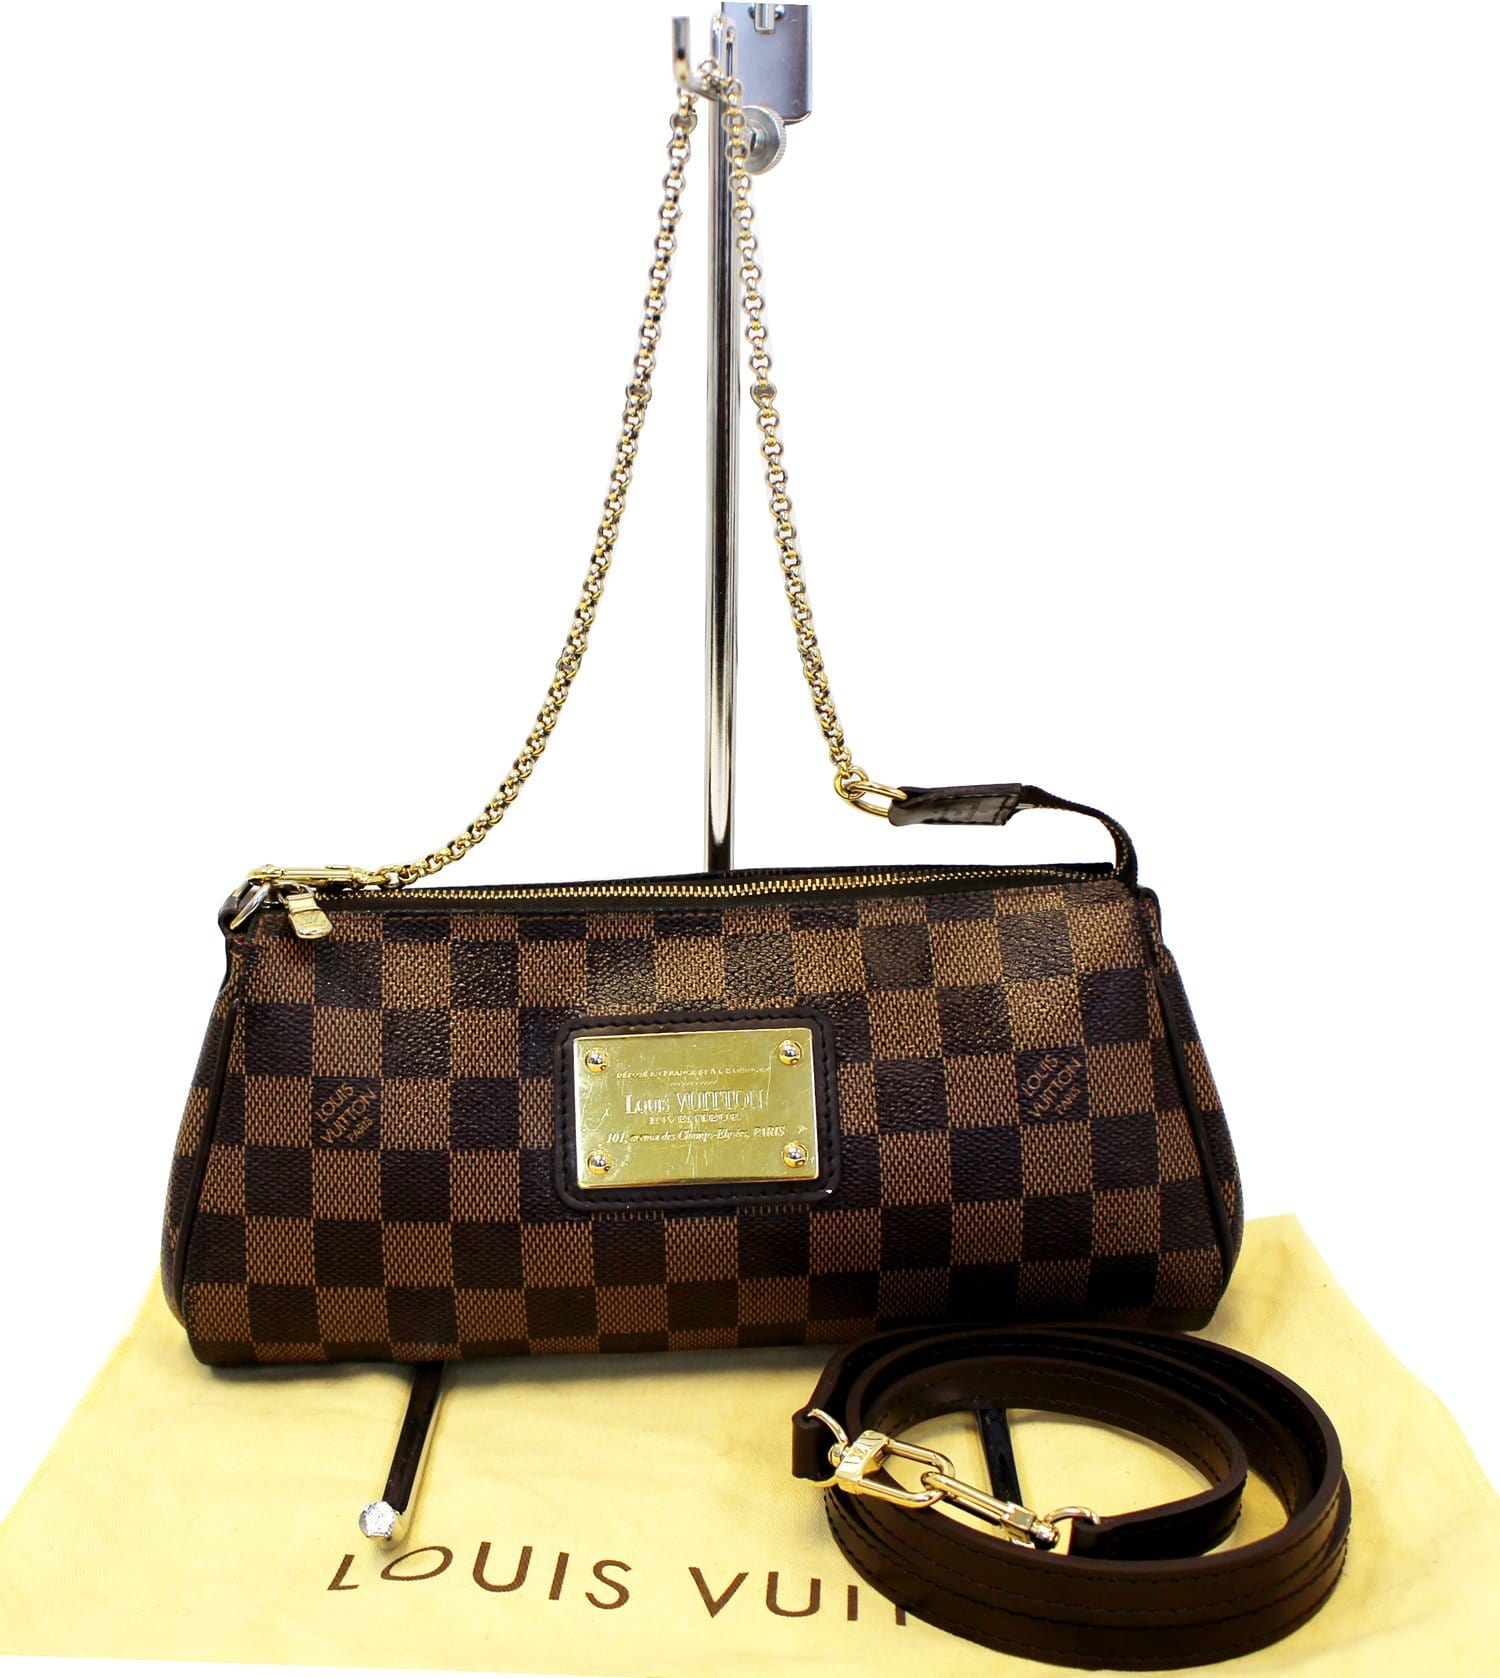 LOUIS VUITTON Damier Ebene Eva Accessories Pouch Crossbody Bag 86df58562f15c